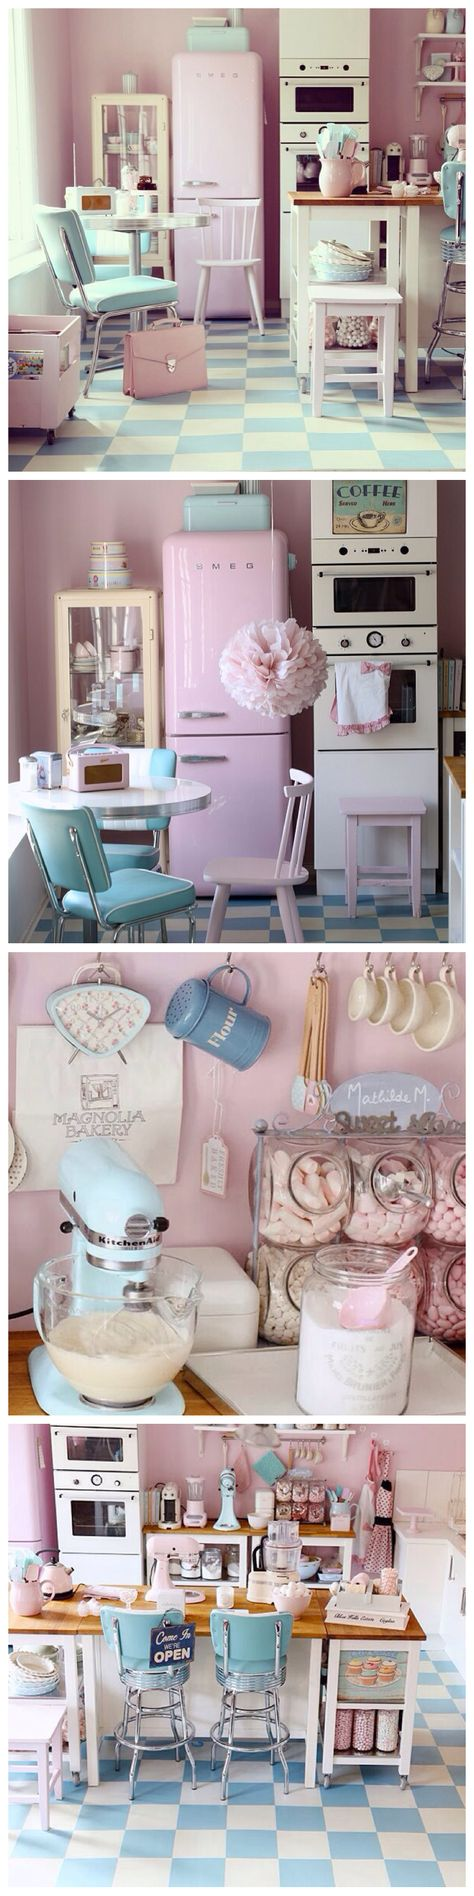 Pretty Pastel Kitchen Inspiration | Decor | Pinterest | Pretty ...